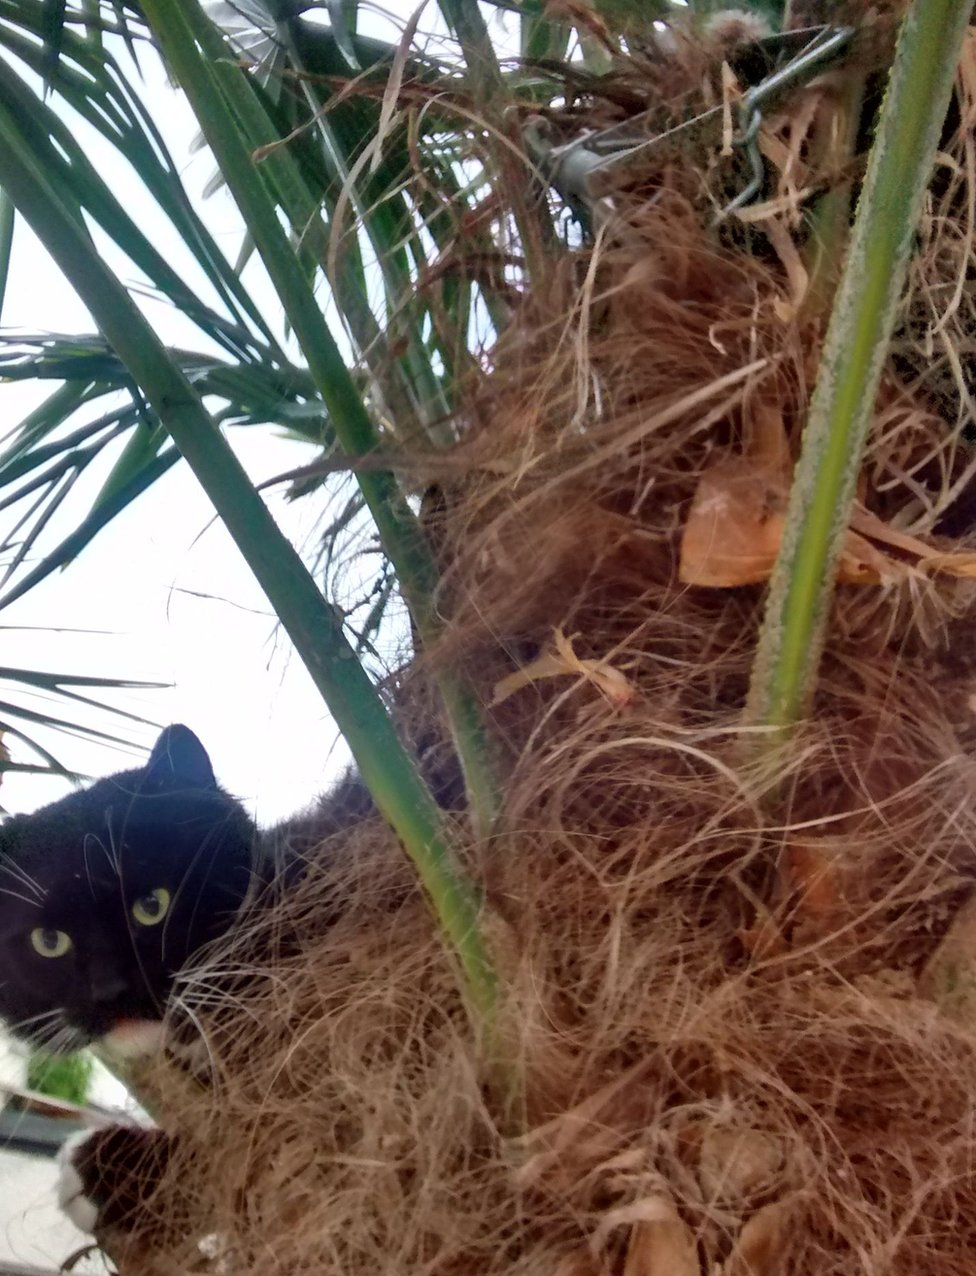 Cat in trap in tree